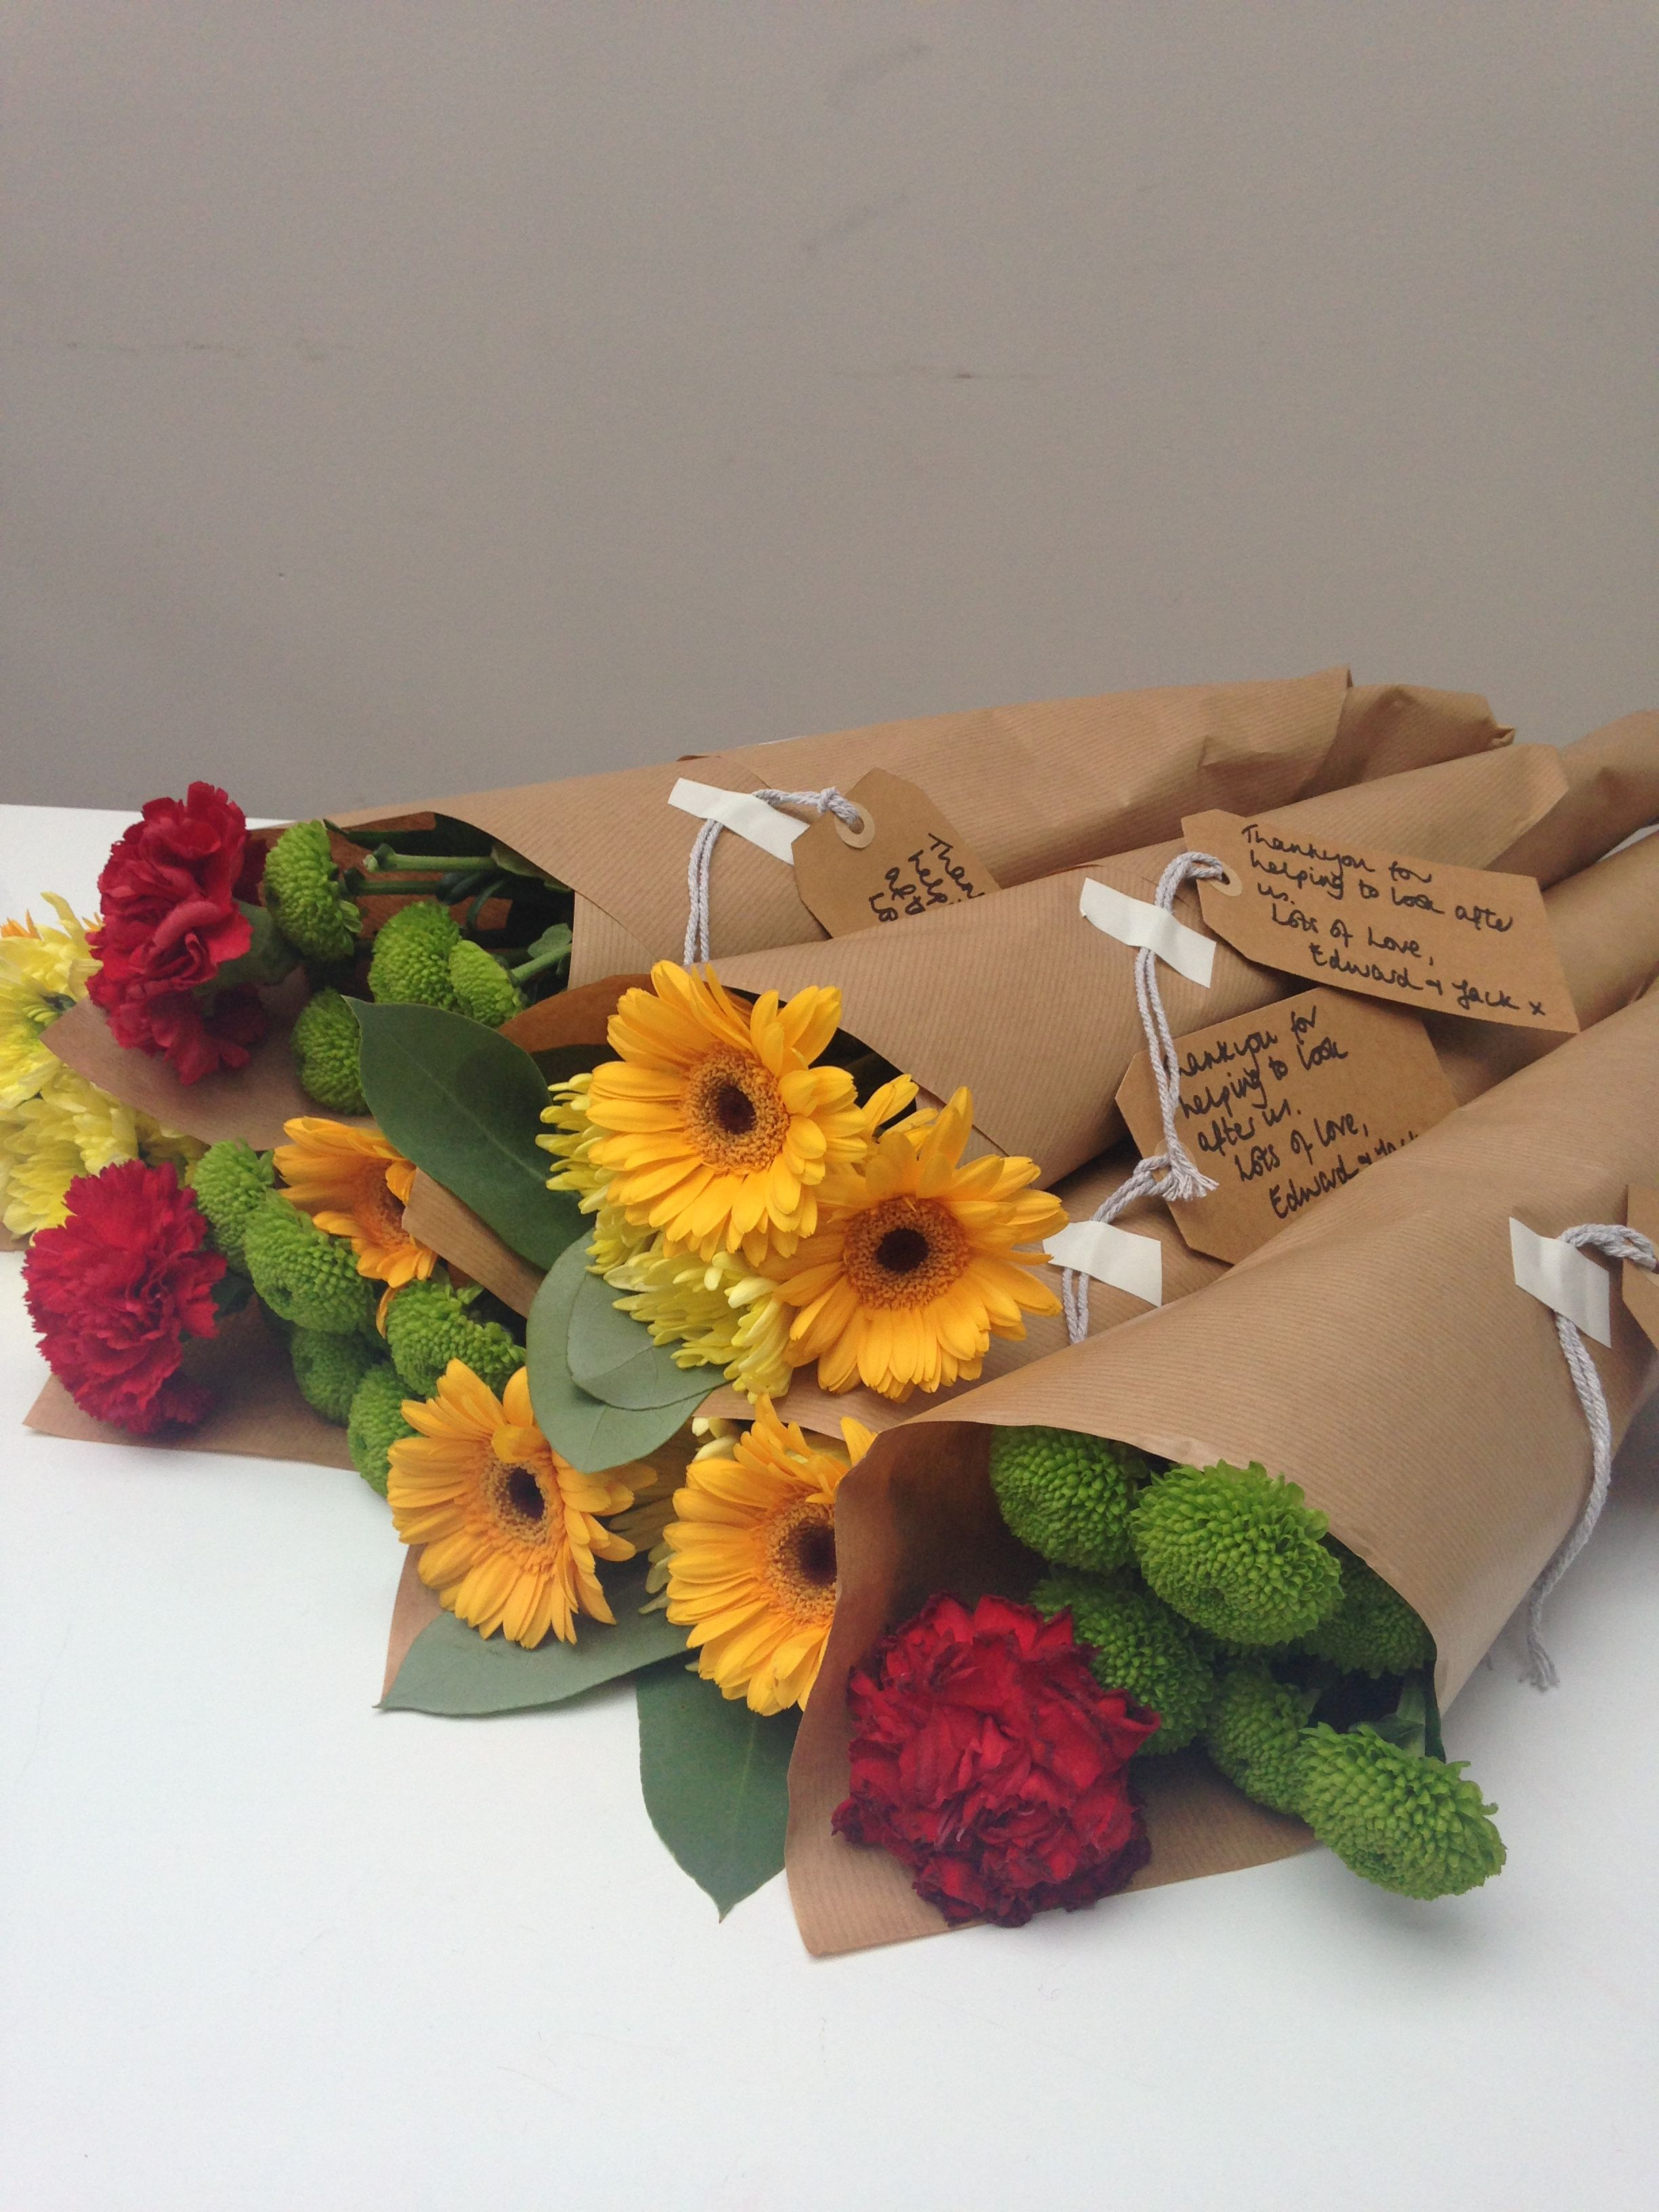 My favourite cheap flower hack buy big bunches of flowers from my favourite cheap flower hack buy big bunches of flowers from supermarket split them here 3 bunches into 6 re wrap in brown paper add a luggage izmirmasajfo